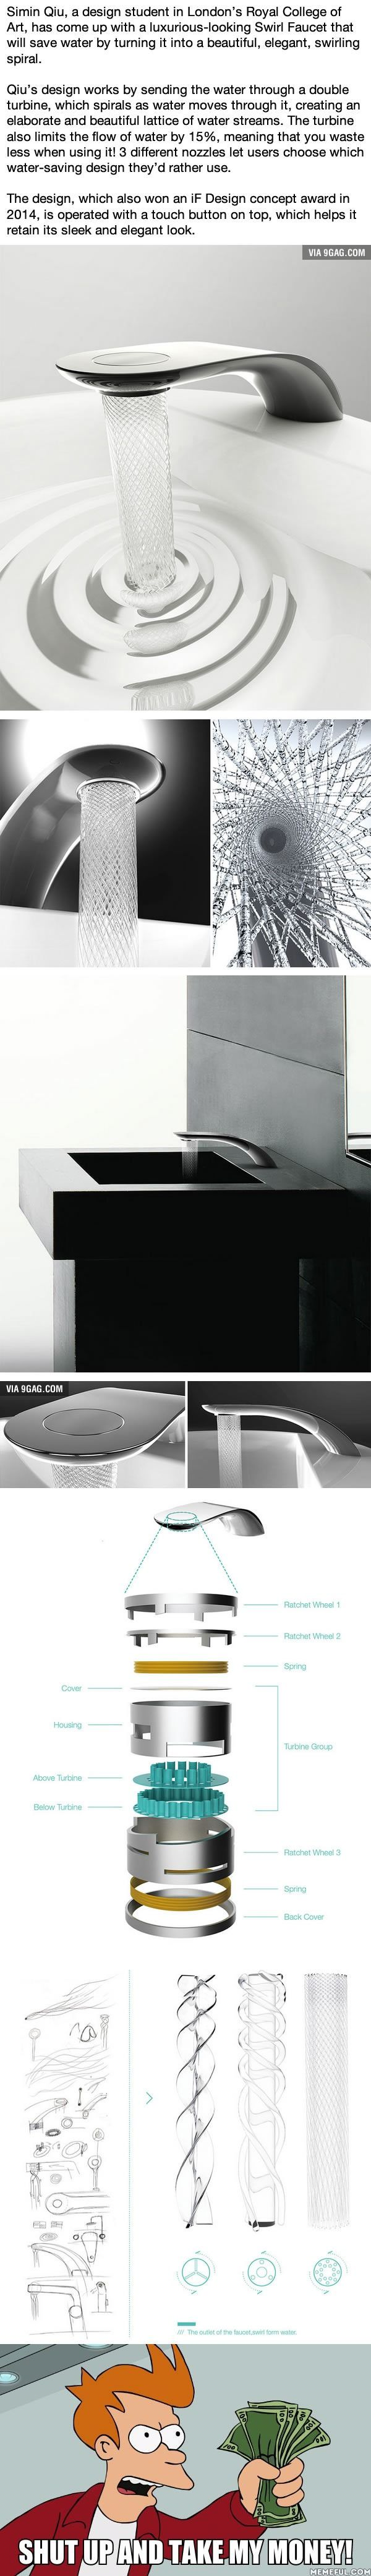 1000 ideas about utility sink faucets on pinterest for Architecture students 9gag